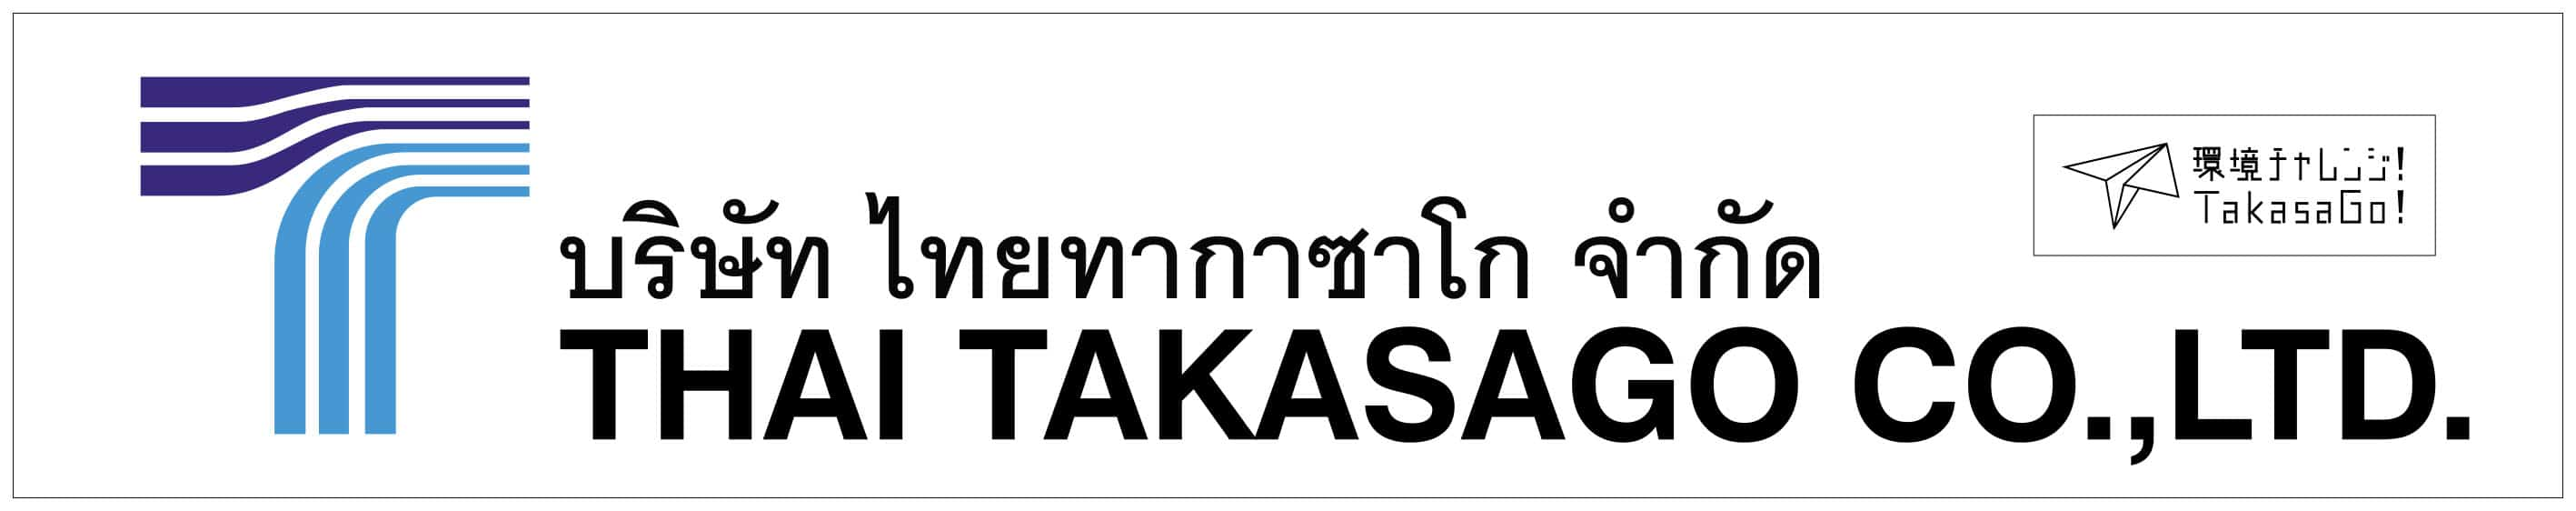 Thai Takasago Co., Ltd.